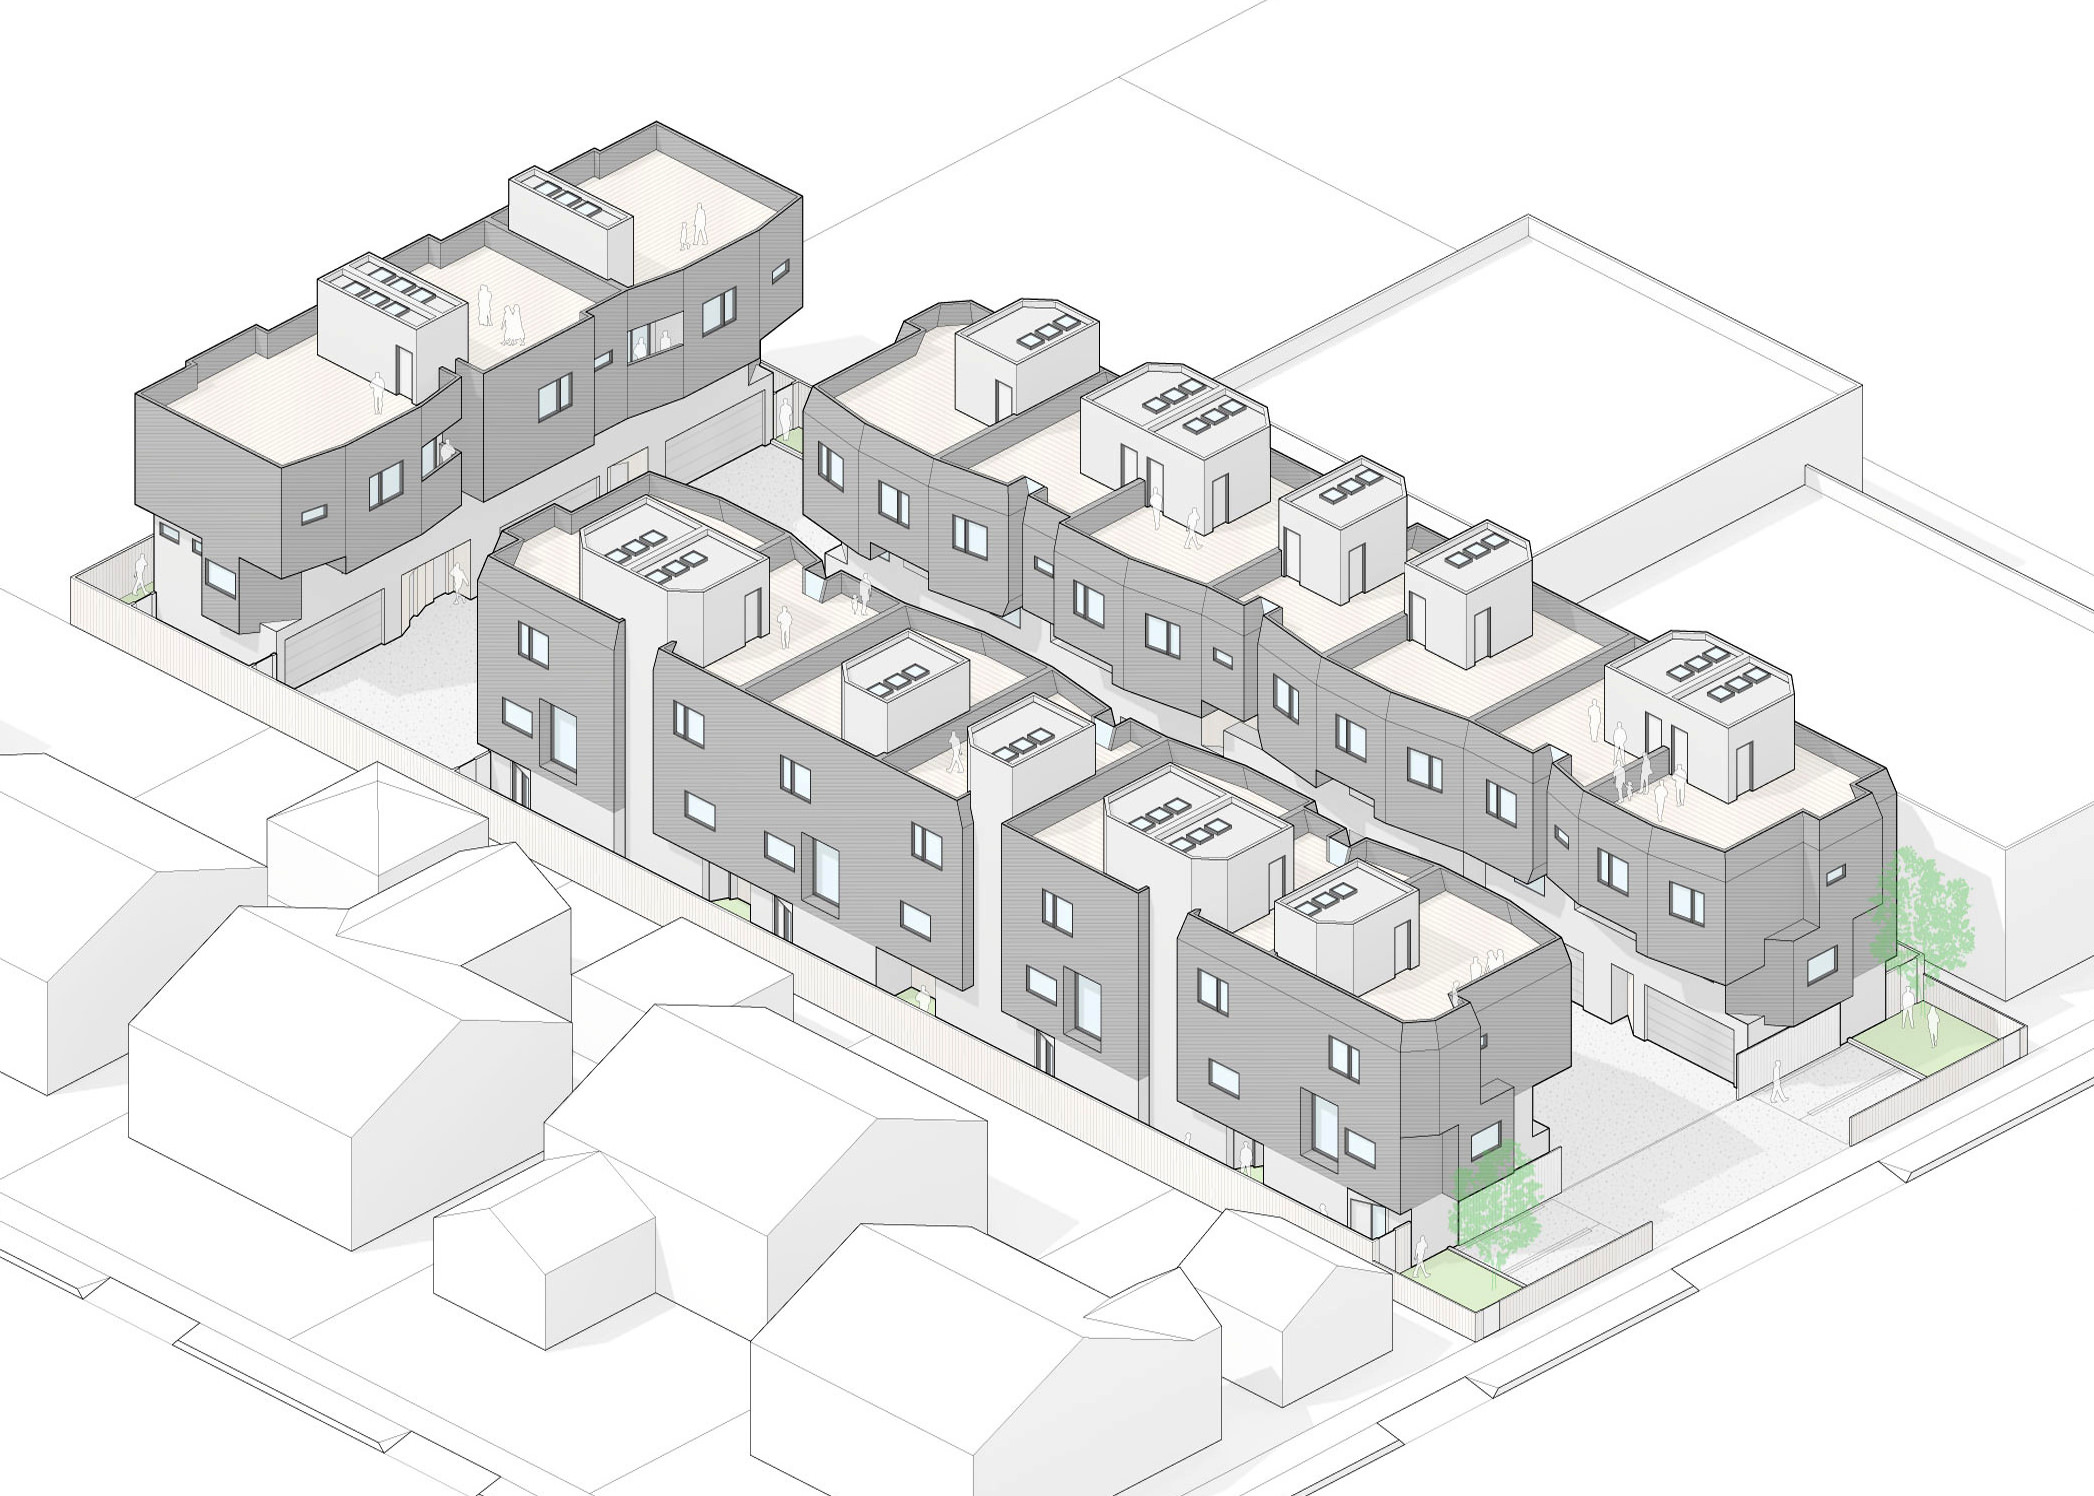 Isometric drawing of the 17 units.